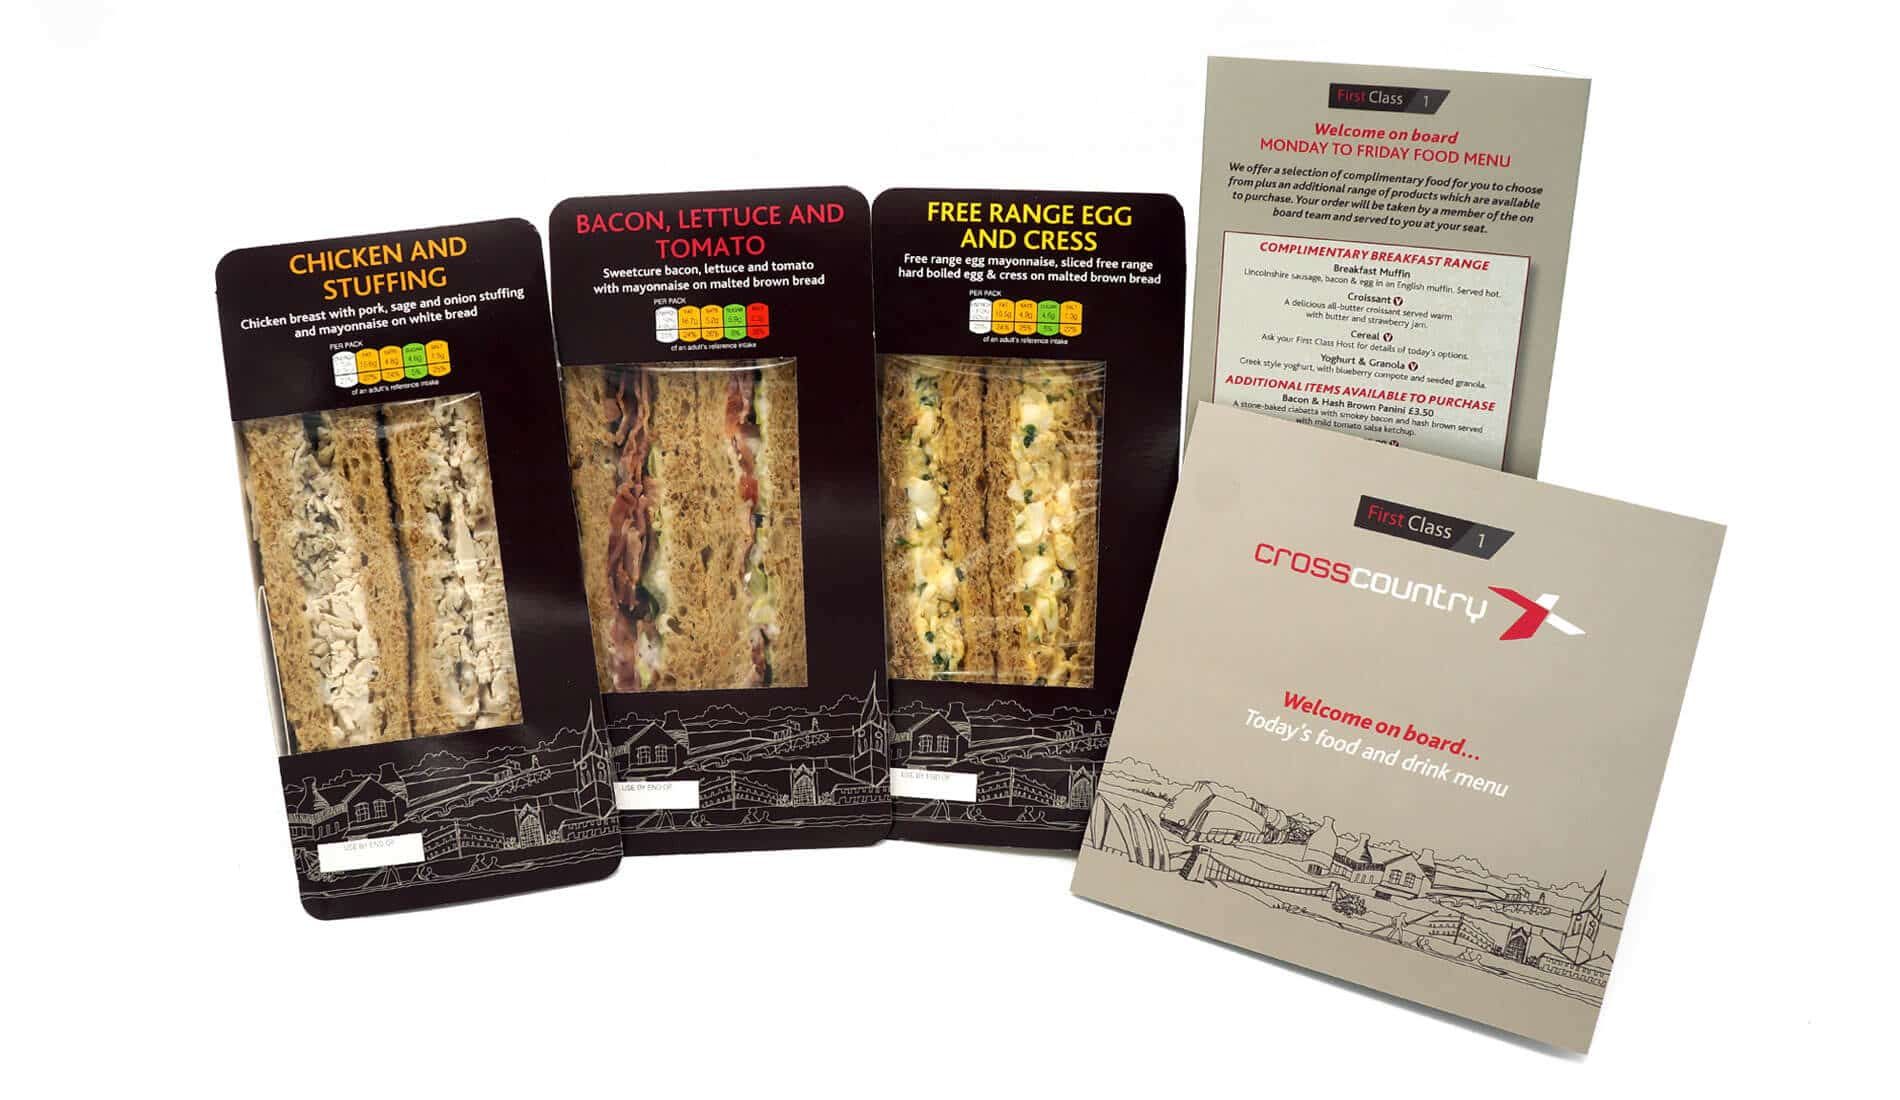 Packaging design for cross country trains including sandwiches and menus